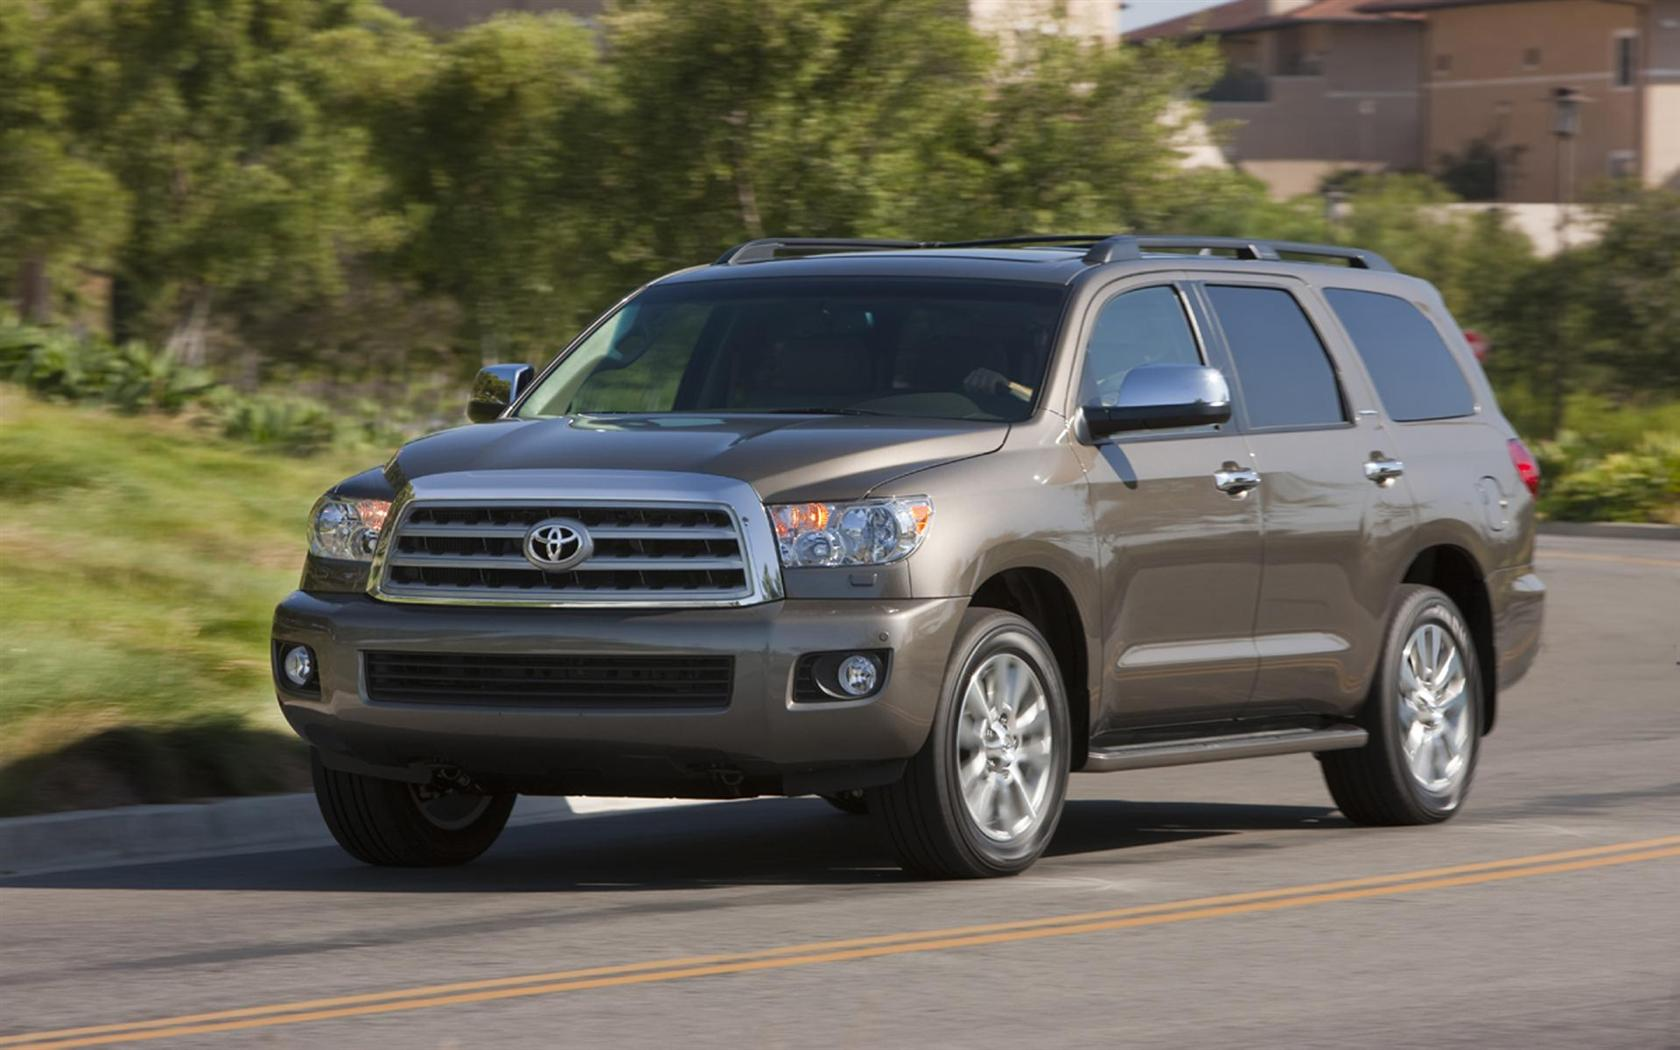 2012 toyota sequoia images photo 2012 toyota sequoia truck image 021. Black Bedroom Furniture Sets. Home Design Ideas